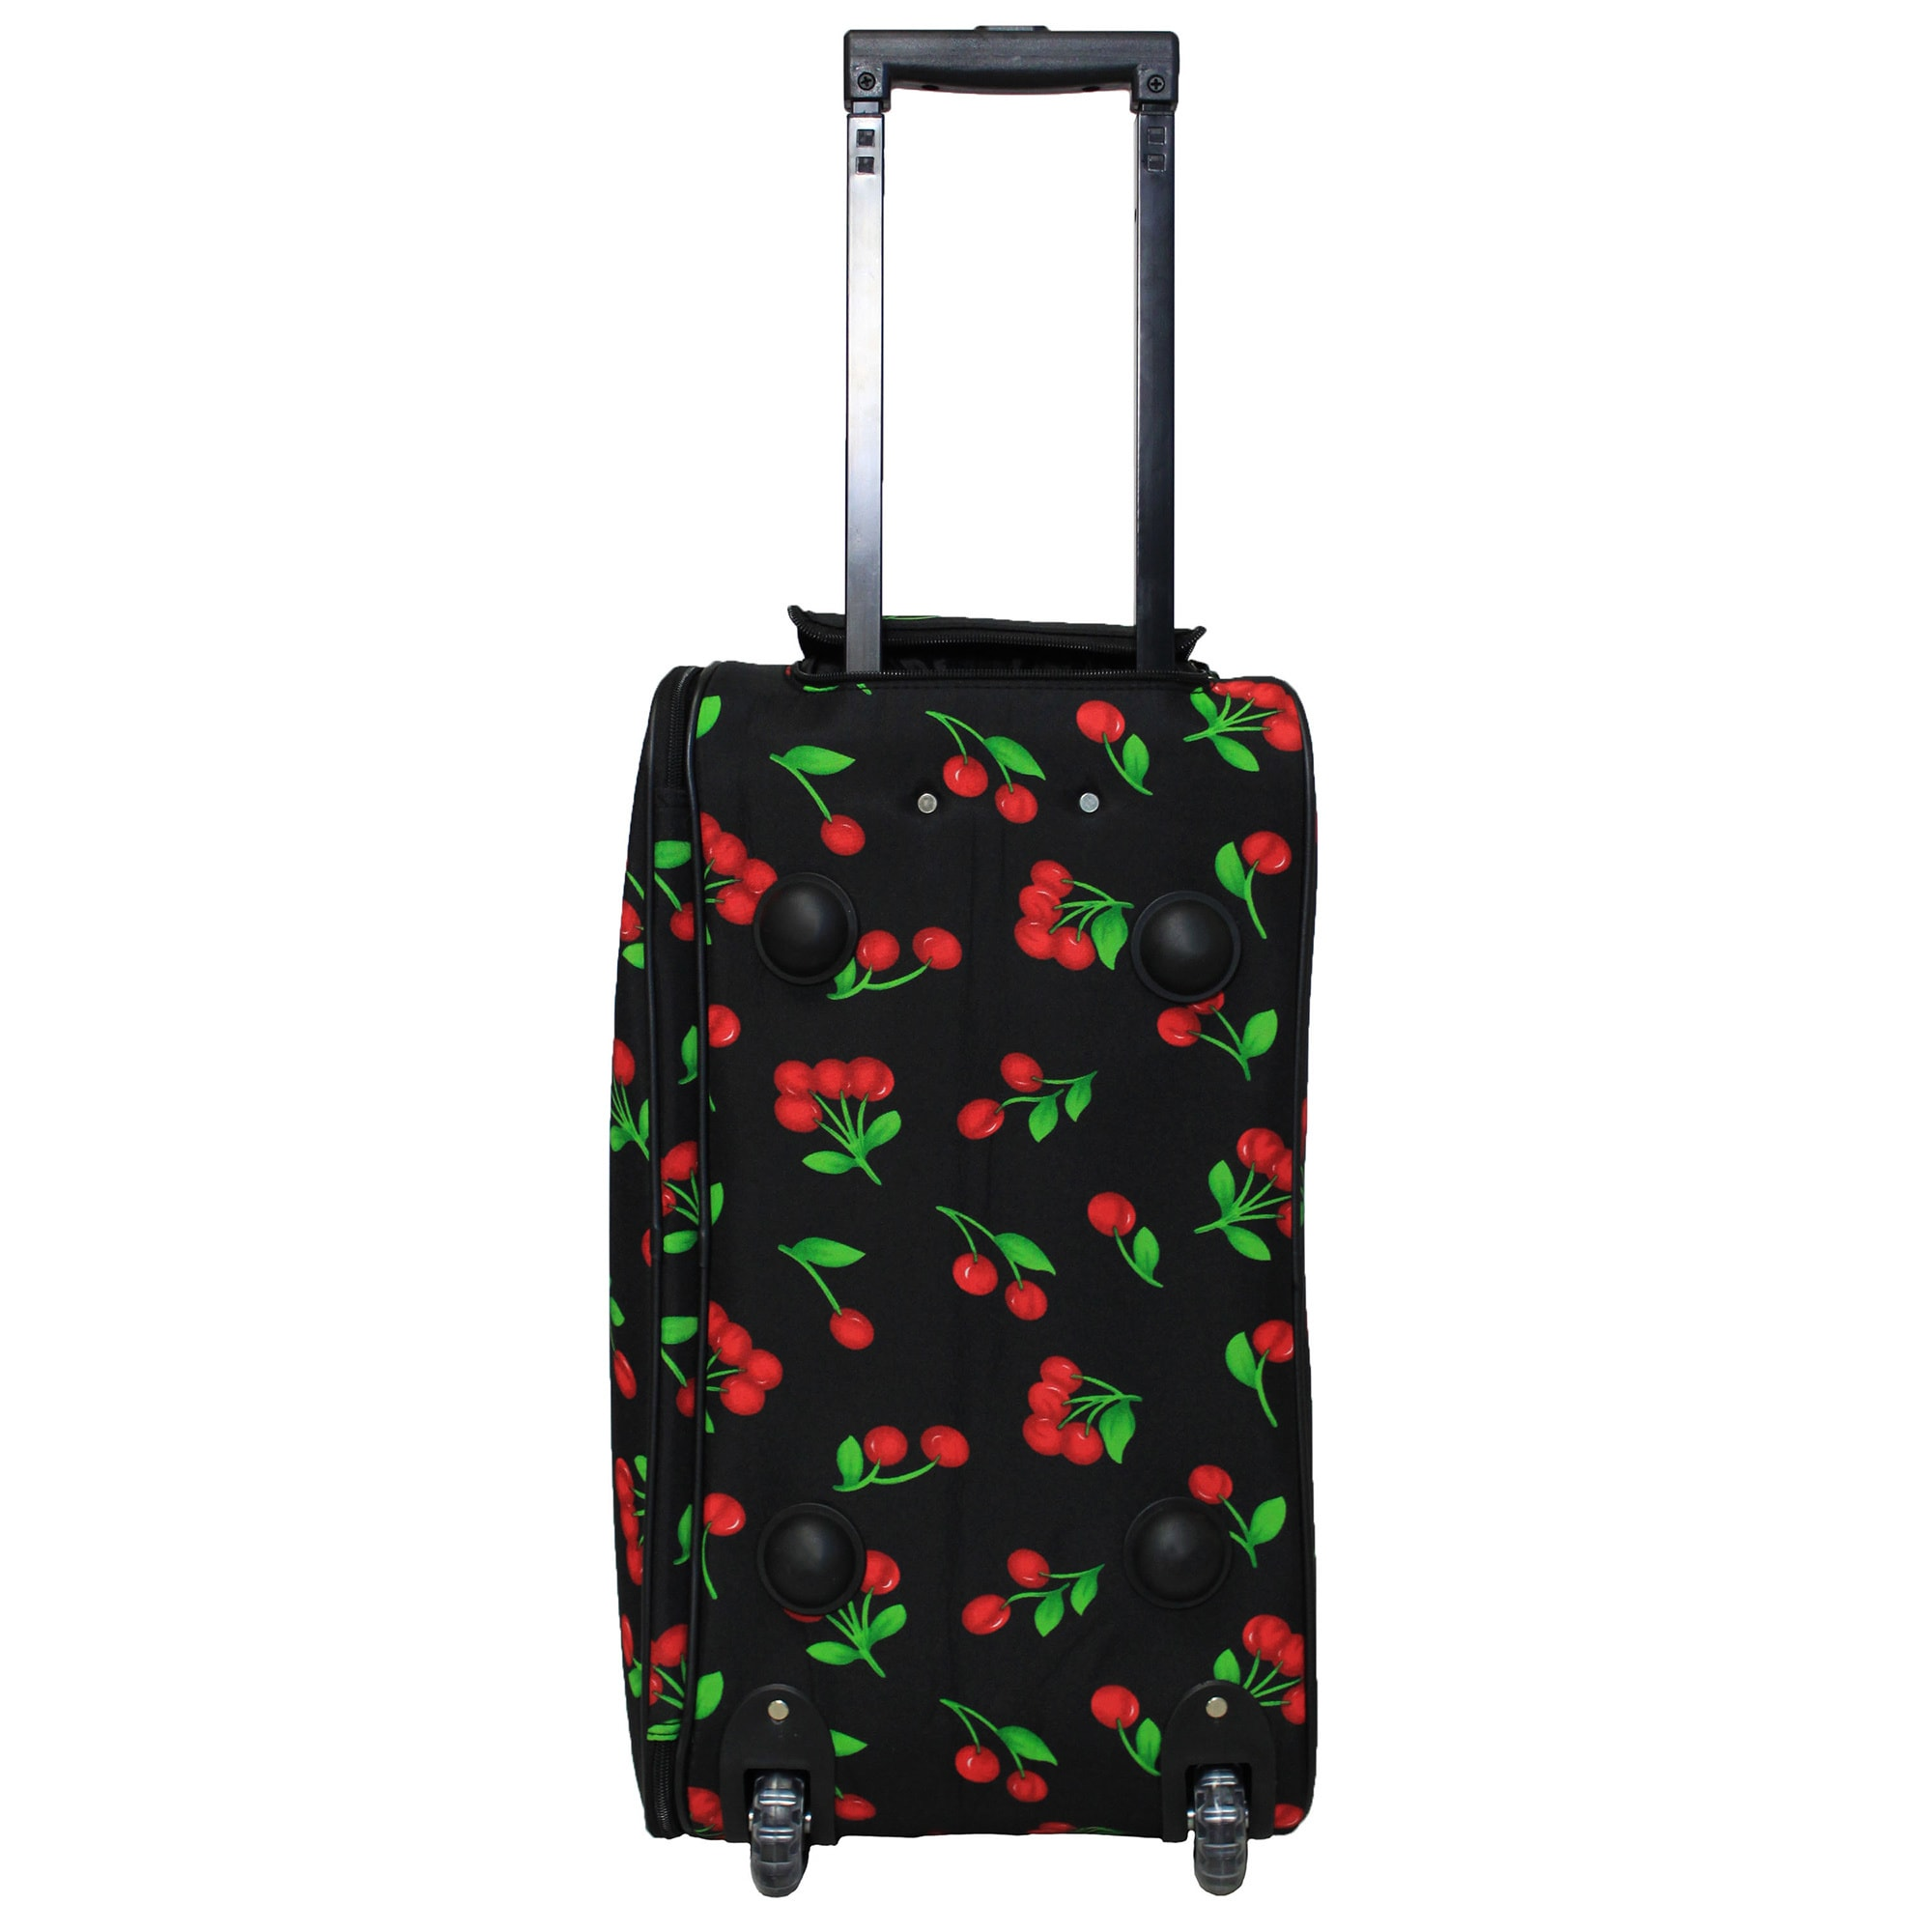 eb2e67a991cf Shop World Traveler Cherry 21-inch Carry-on Rolling Duffle Bag - Free  Shipping Today - Overstock - 10485101